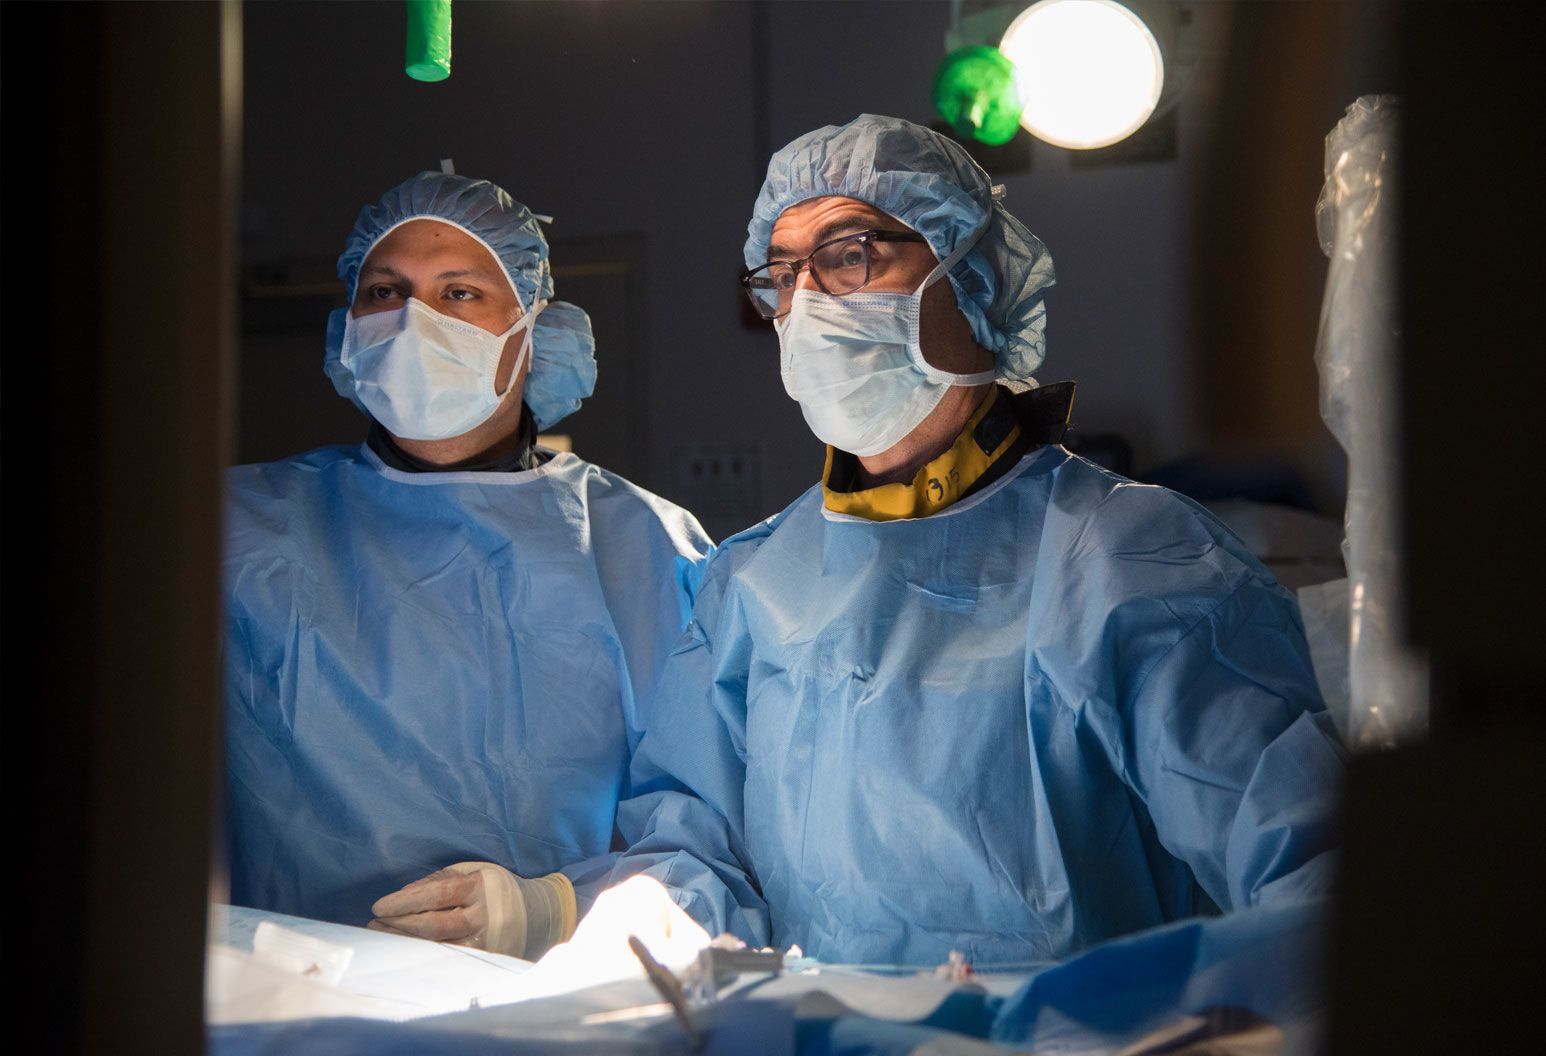 Two surgeons are wearing surgical gowns and masks are in the operating room looking at a monitor